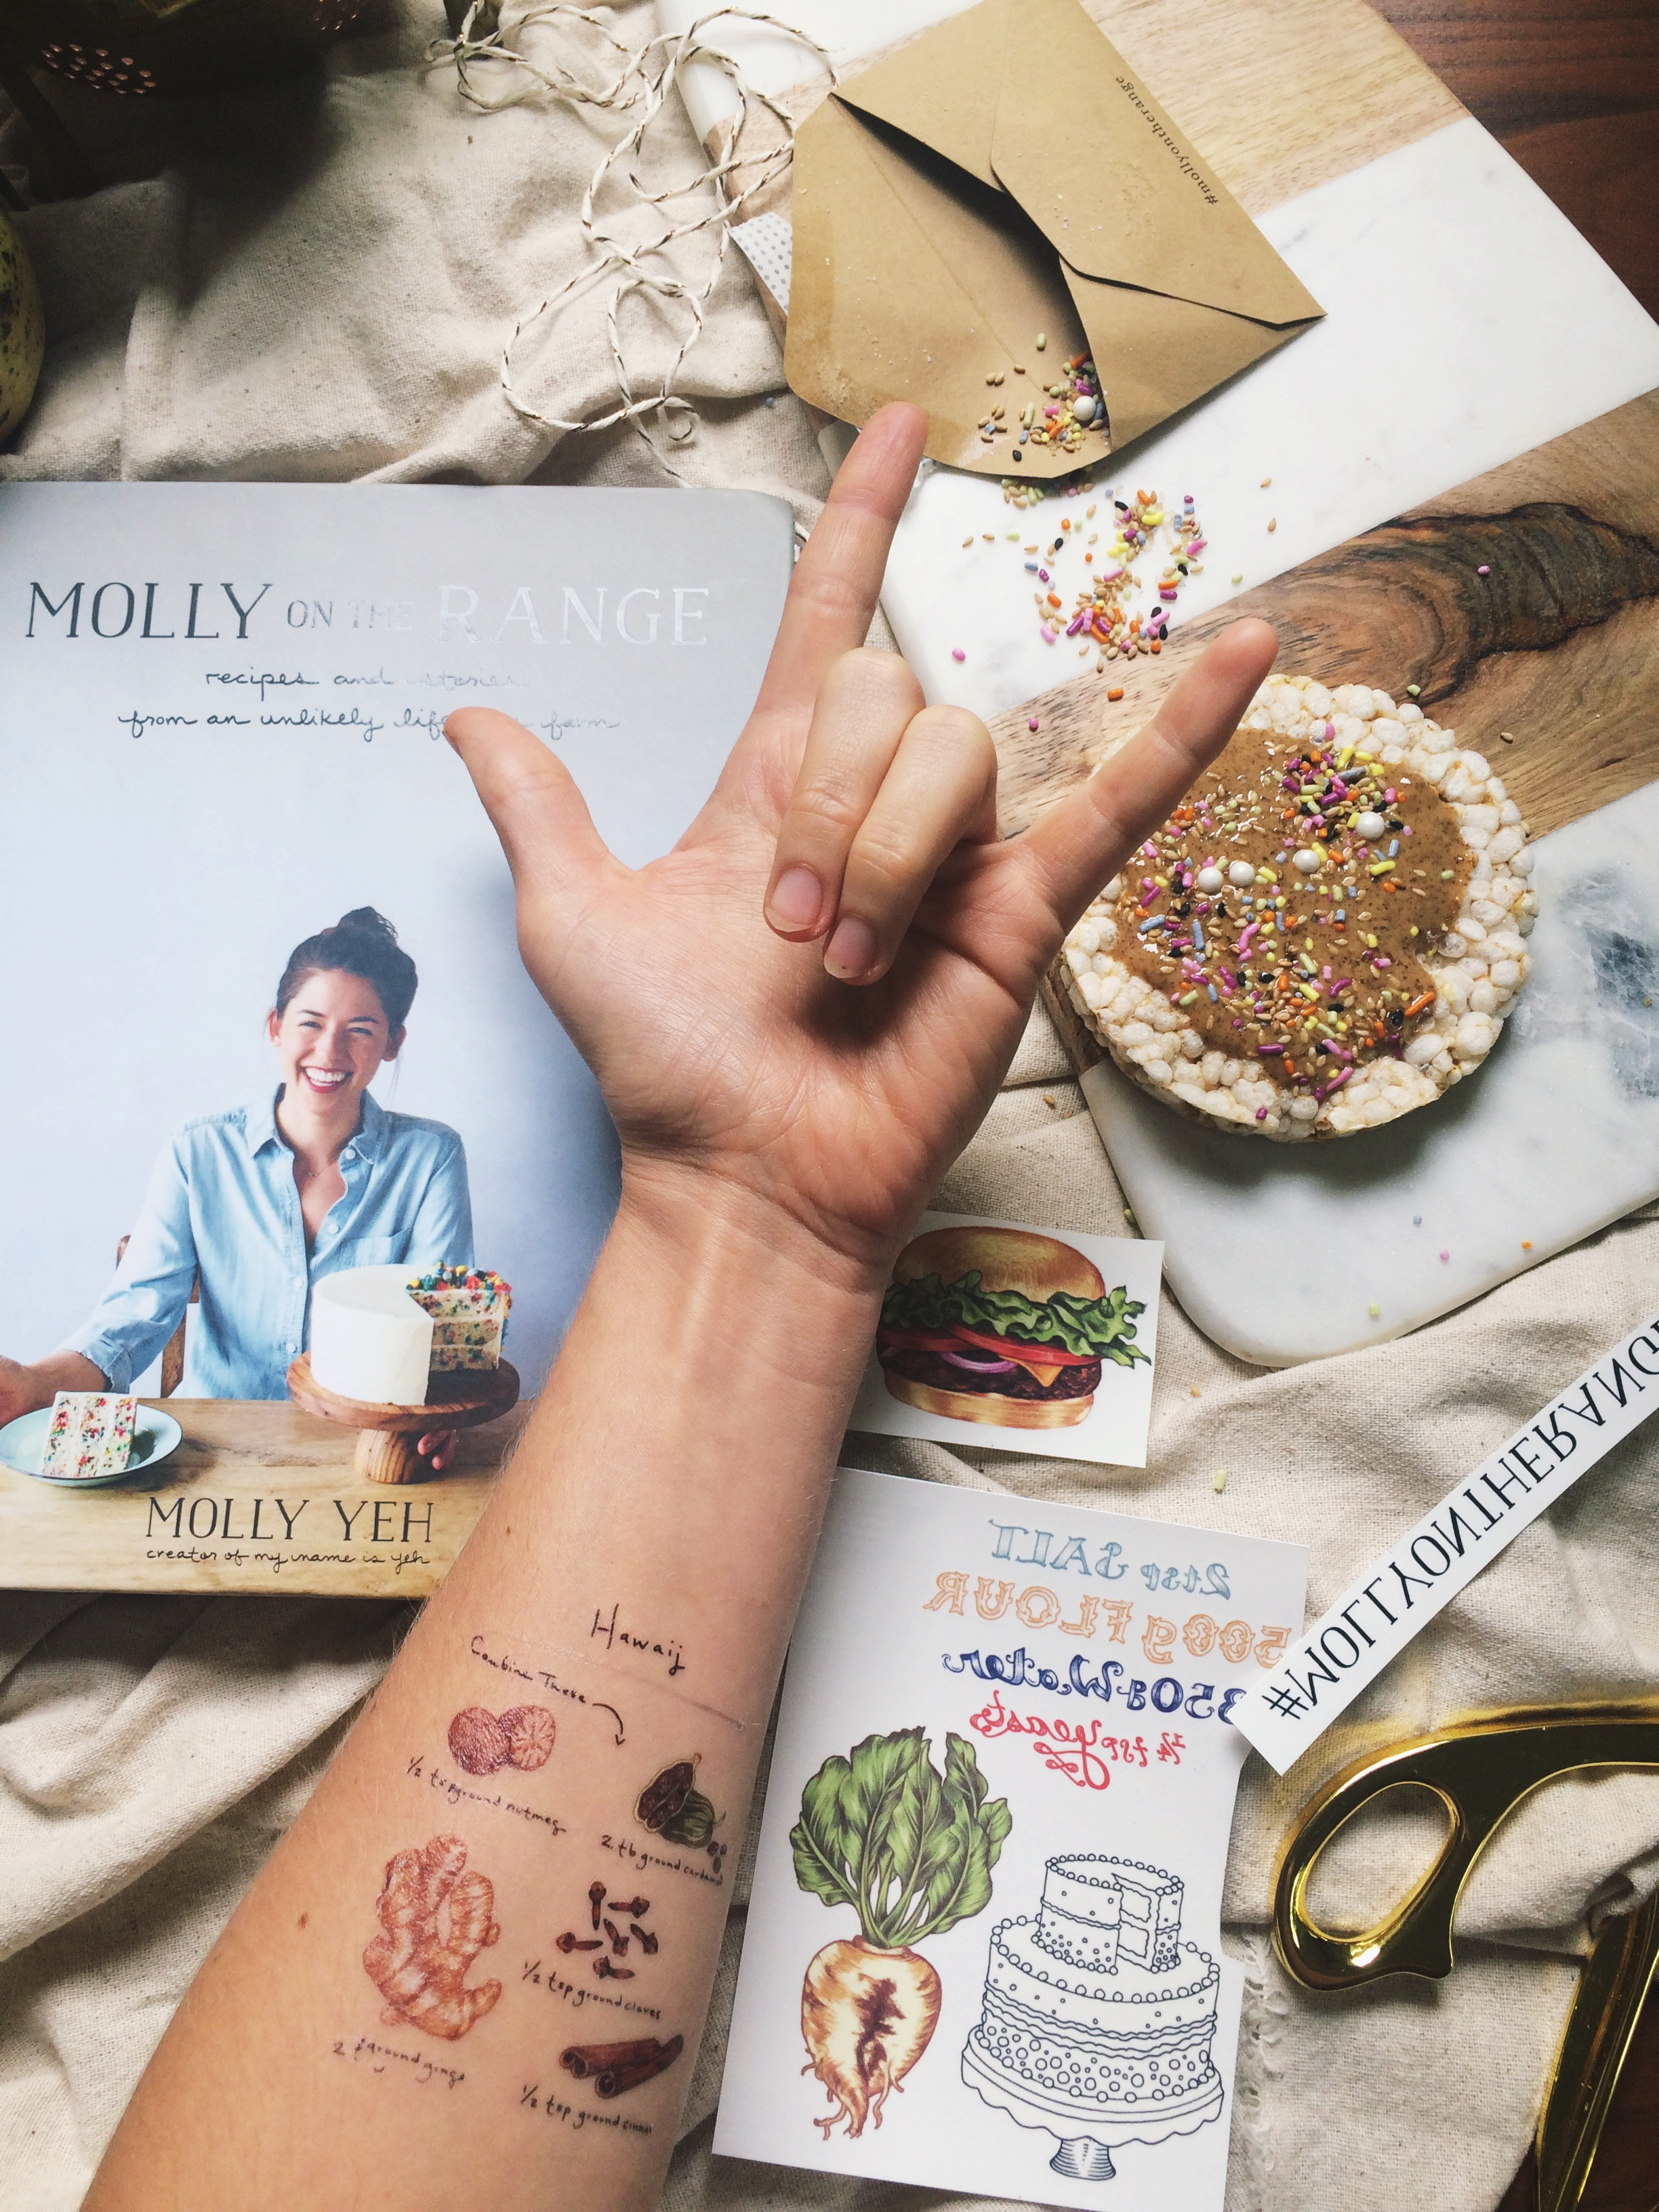 Yes that's a hawaij temporary tattoo on my arm. And a rice cake with almond butter and Molly's sesame cardamom sprinkles!